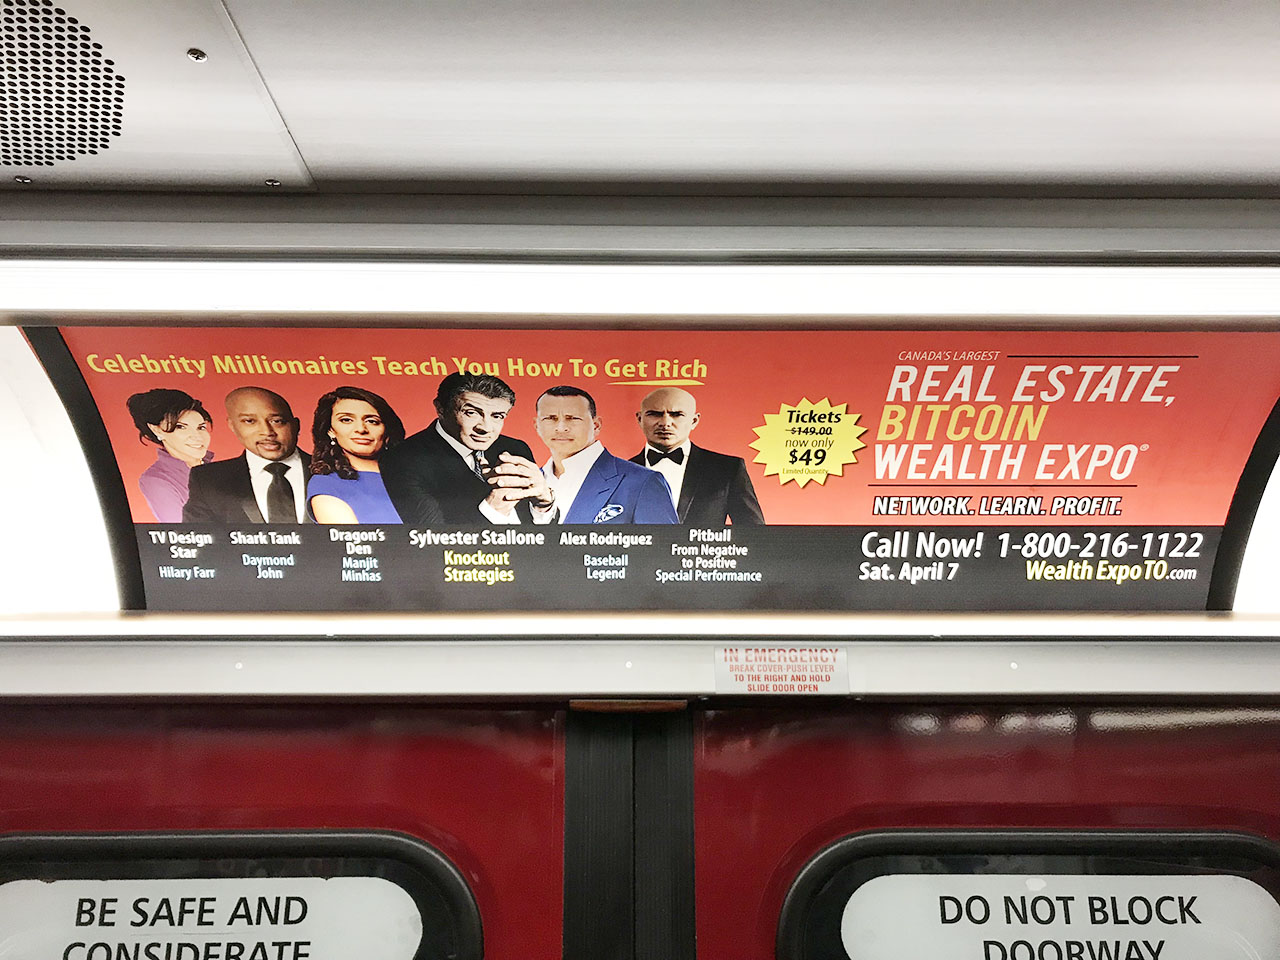 Real Estate Wealth Expo